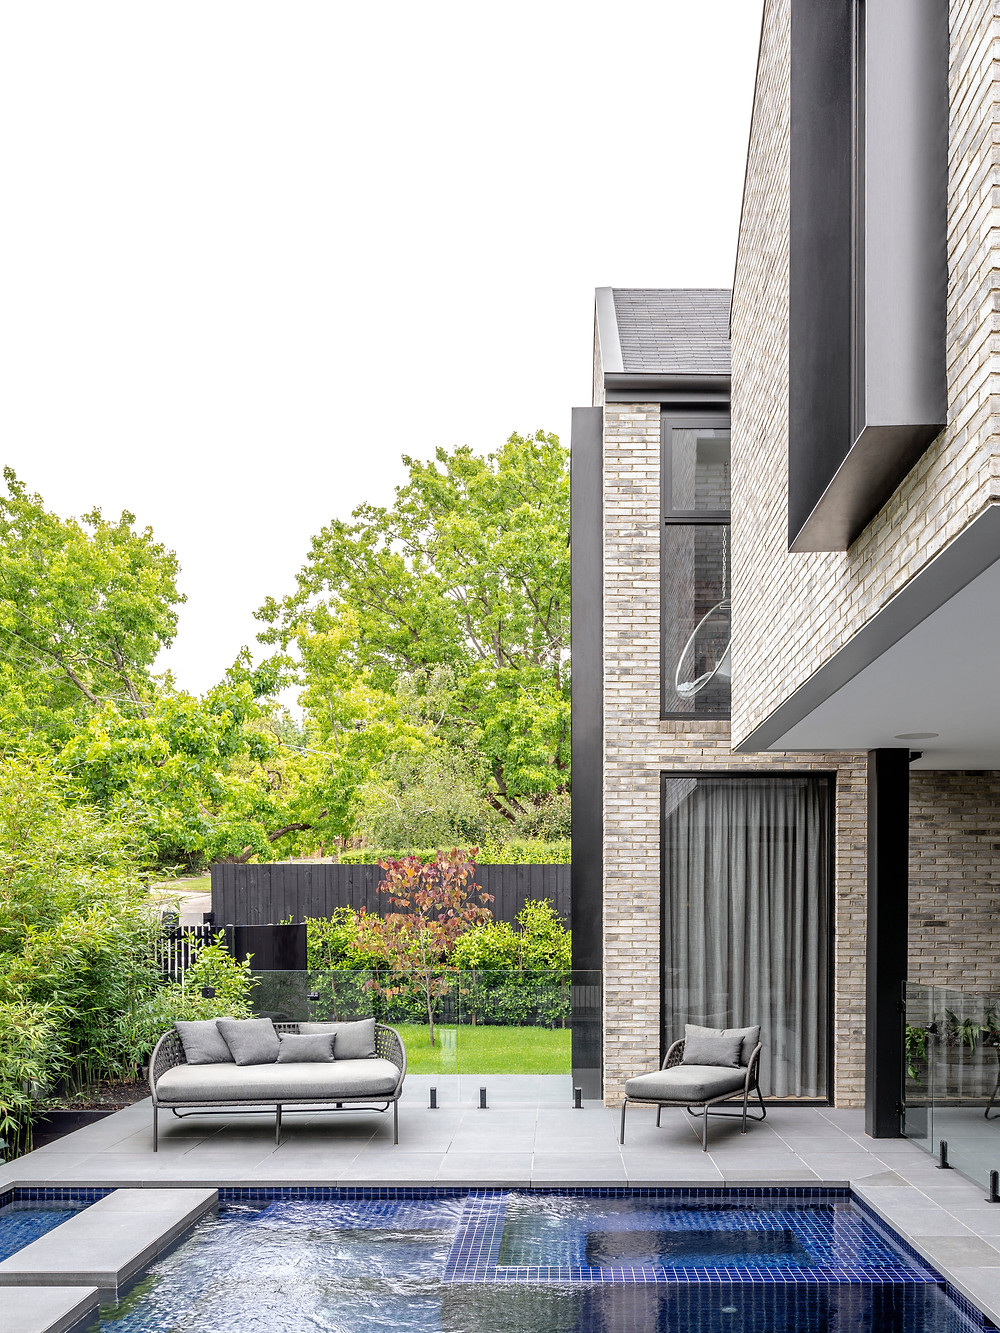 Sunset House showcases the tactile quality of Petersen D91 bricks